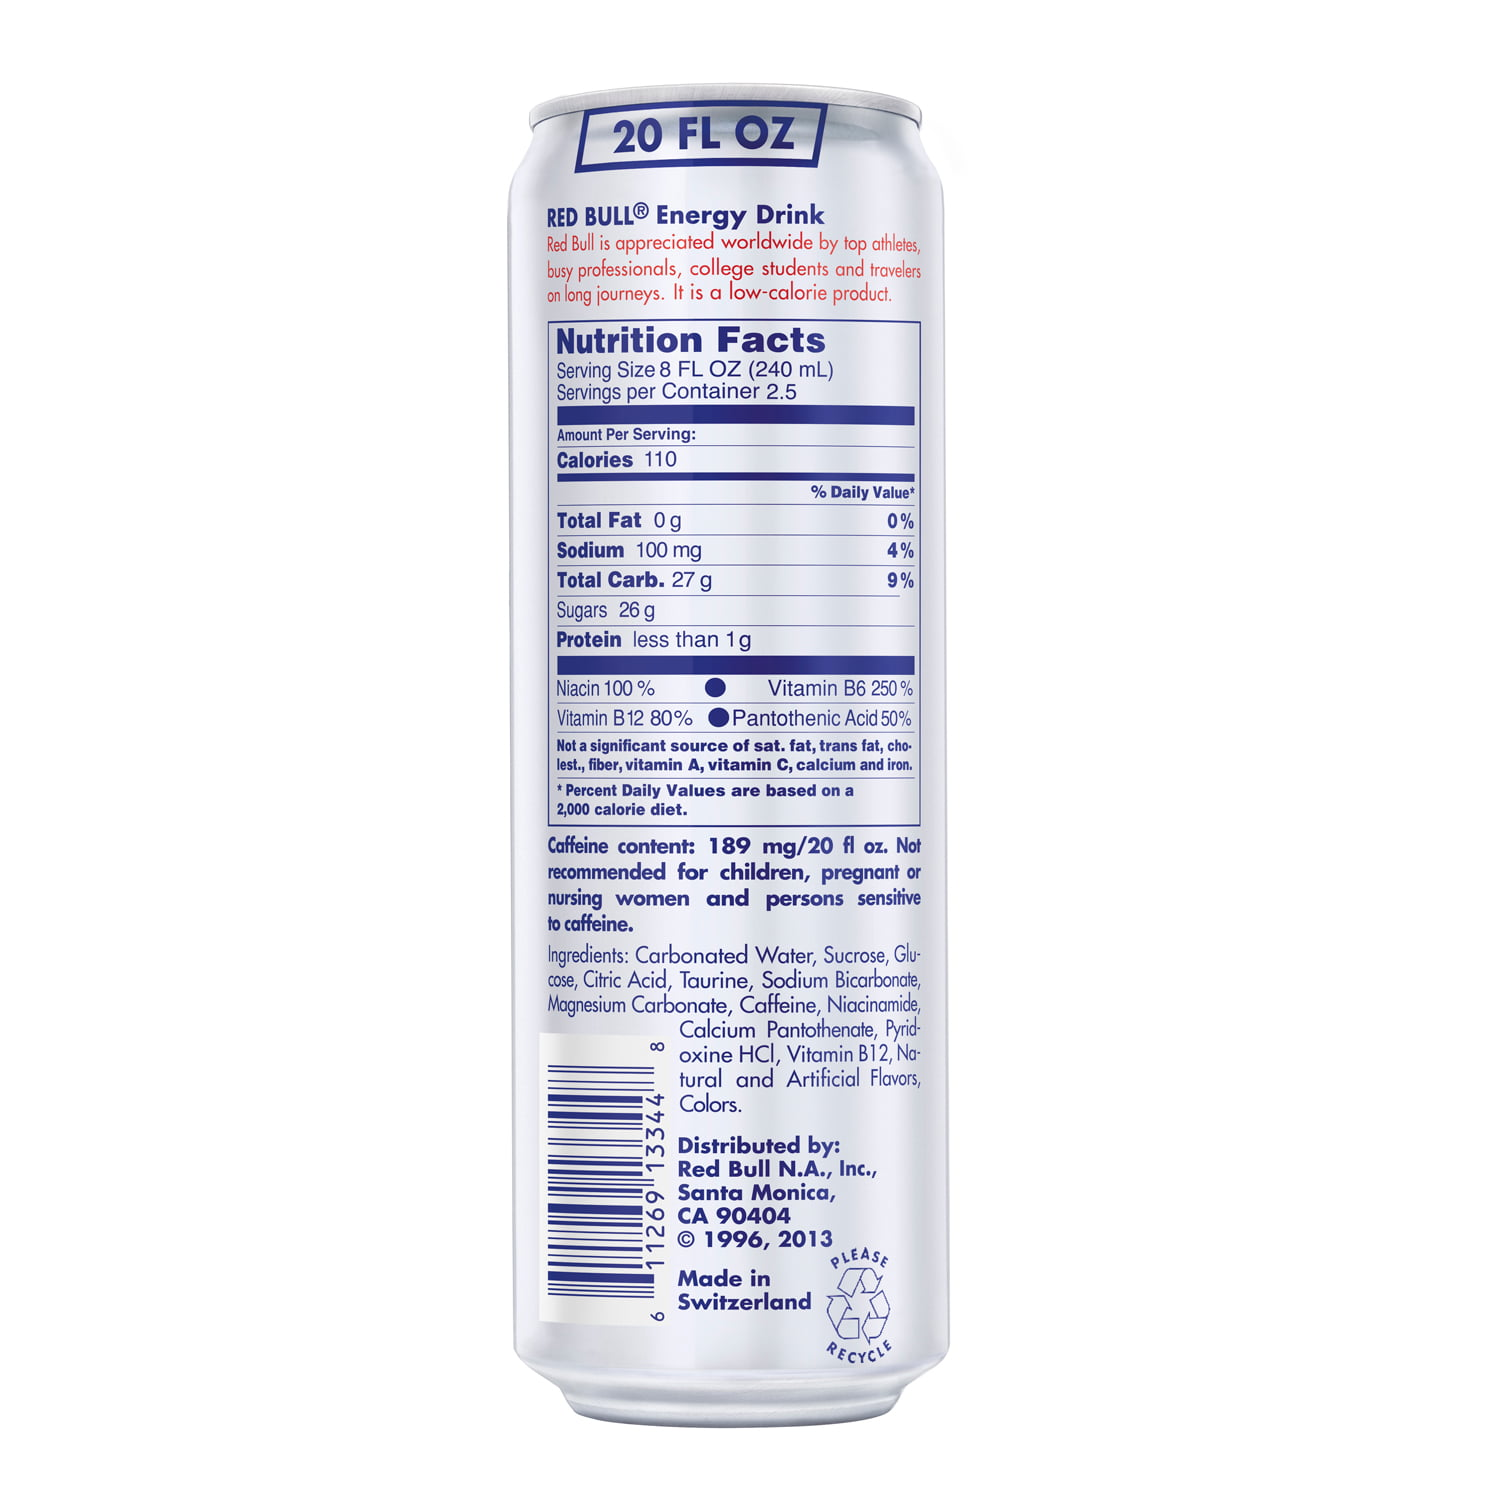 (1 Can) Red Bull Energy Drink, 20 Fl Oz - Walmart.com